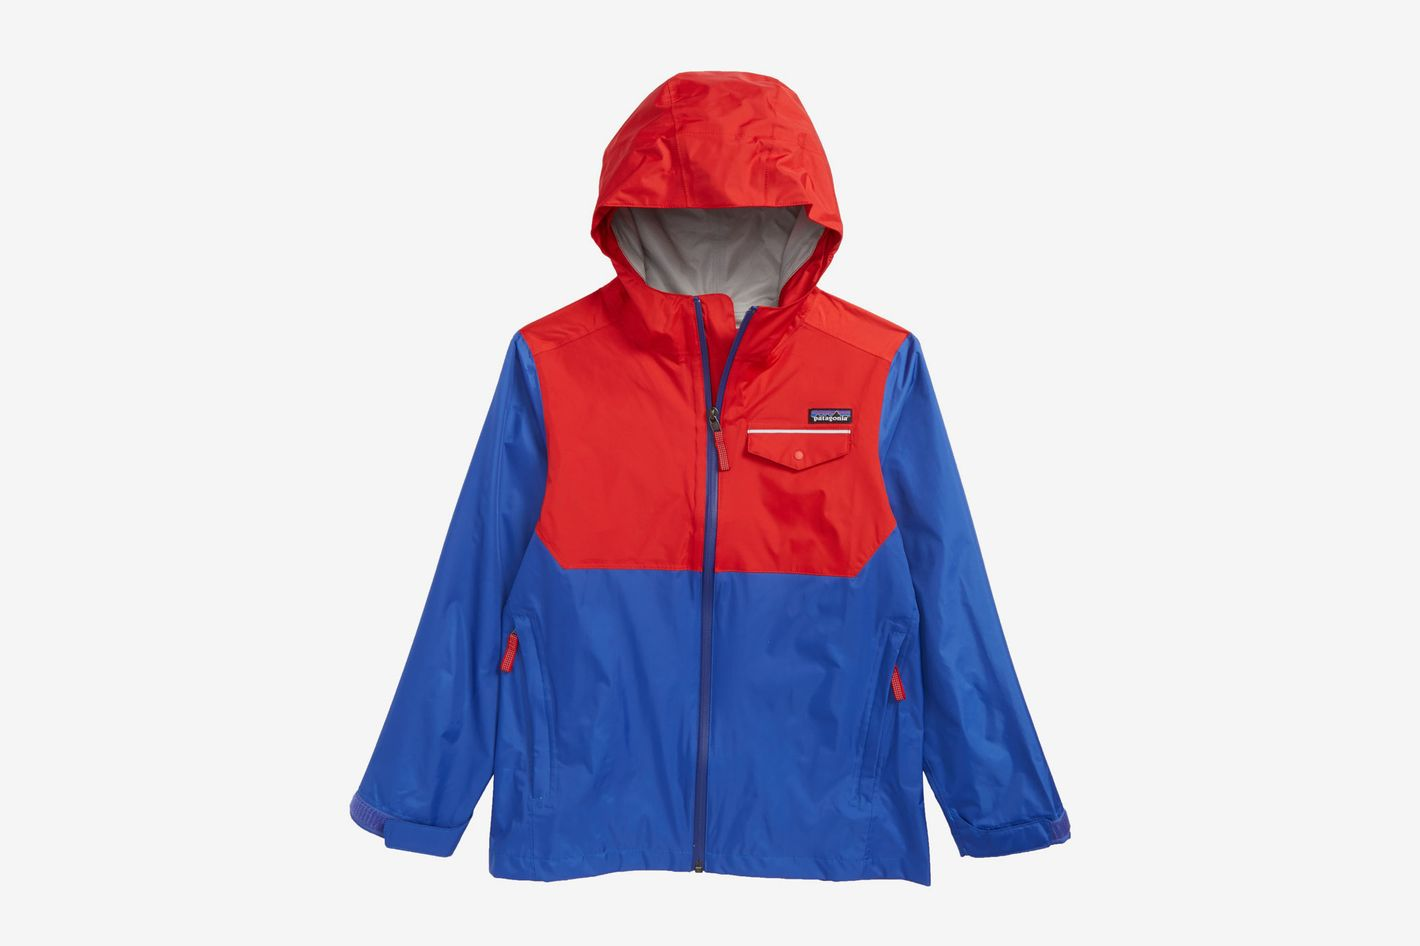 1dc25ad6070 Rains Waterproof Hooded Rain Jacket at Nordstrom. Buy · nordstrom  anniversary sale